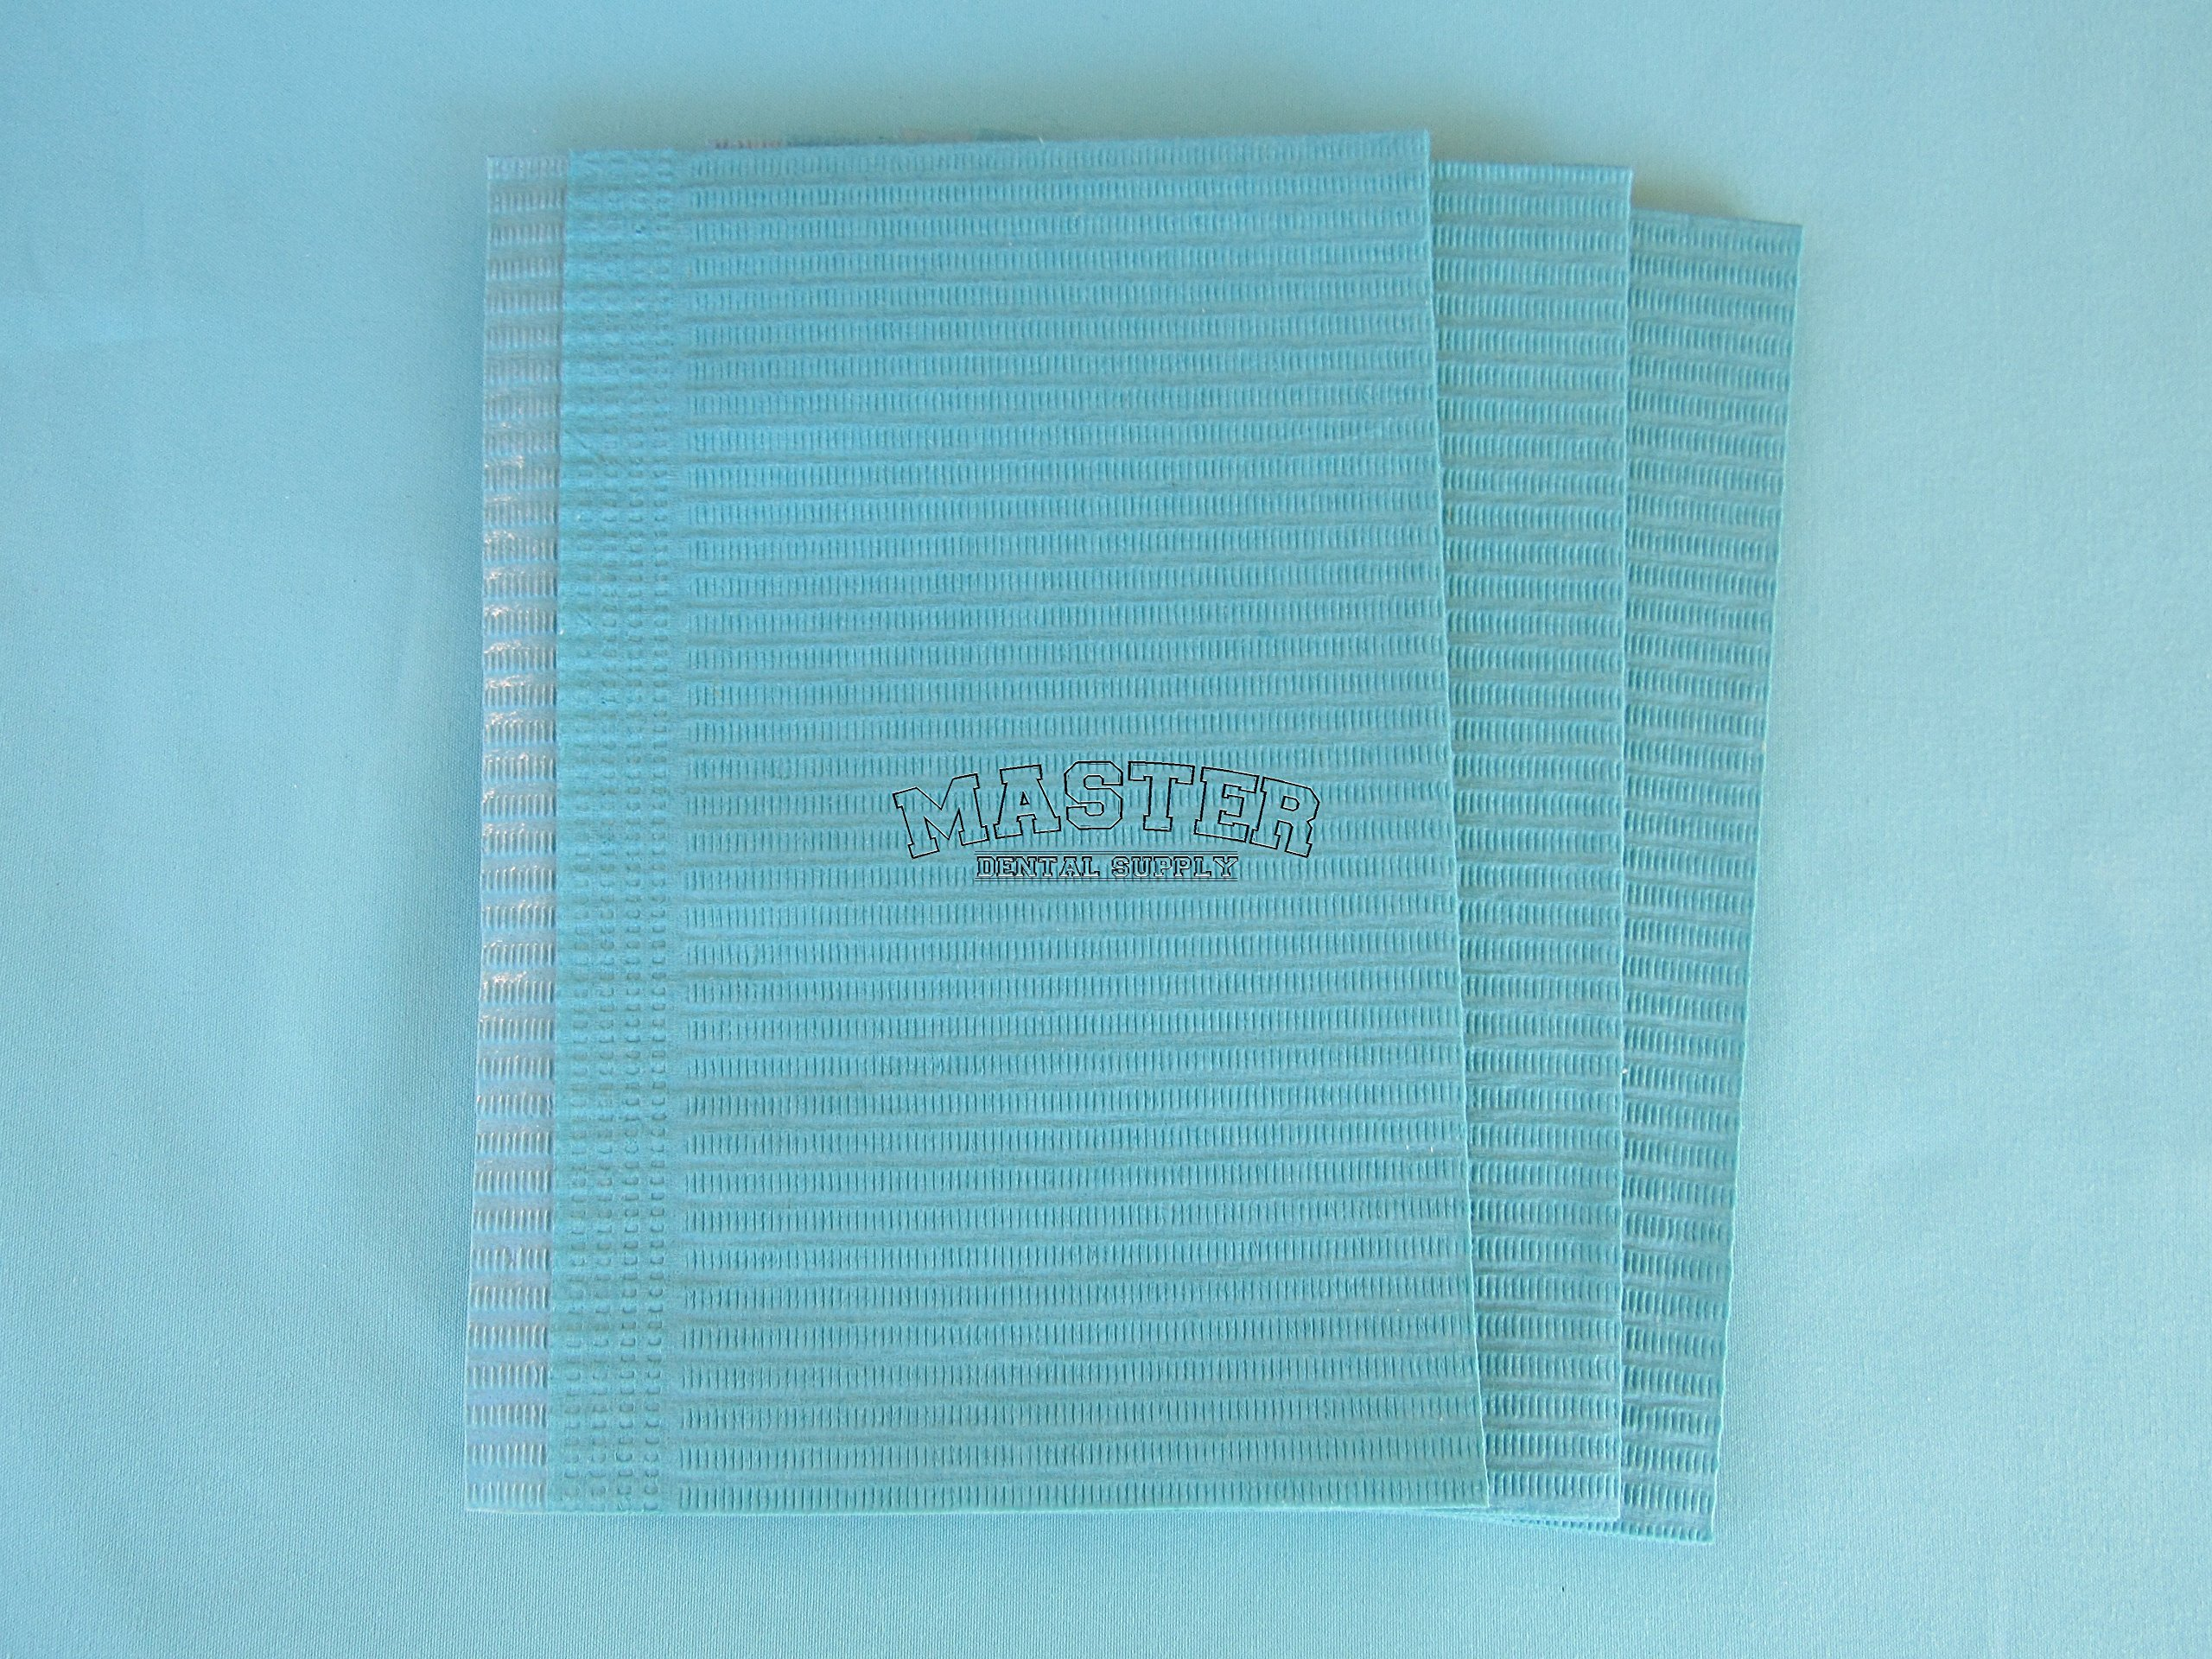 Disposable Patient Bibs Dental Tissue TattooTowels 500 Pcs/Case BLUE Color 3 + 1 Ply Poly Waterproof 13'' X 18''